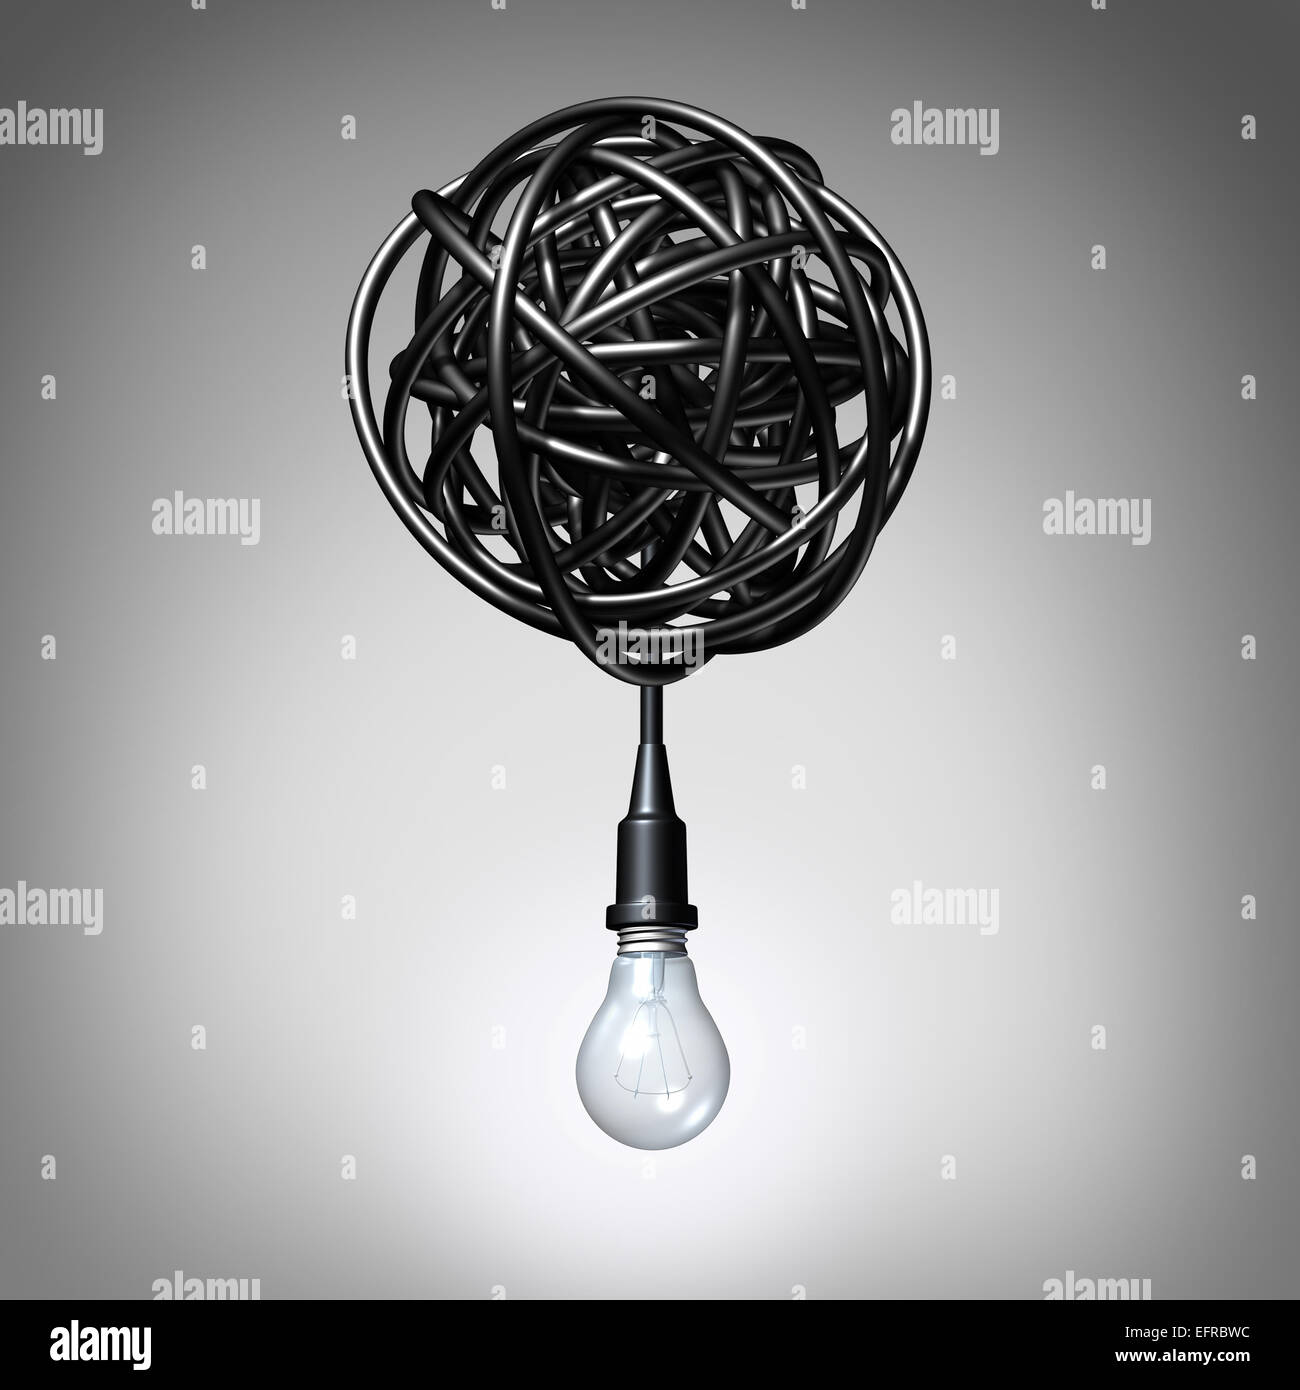 Creative advice concept as a lightbulb or light bulb hanging down from a tangled chaos of twisted electric cord - Stock Image